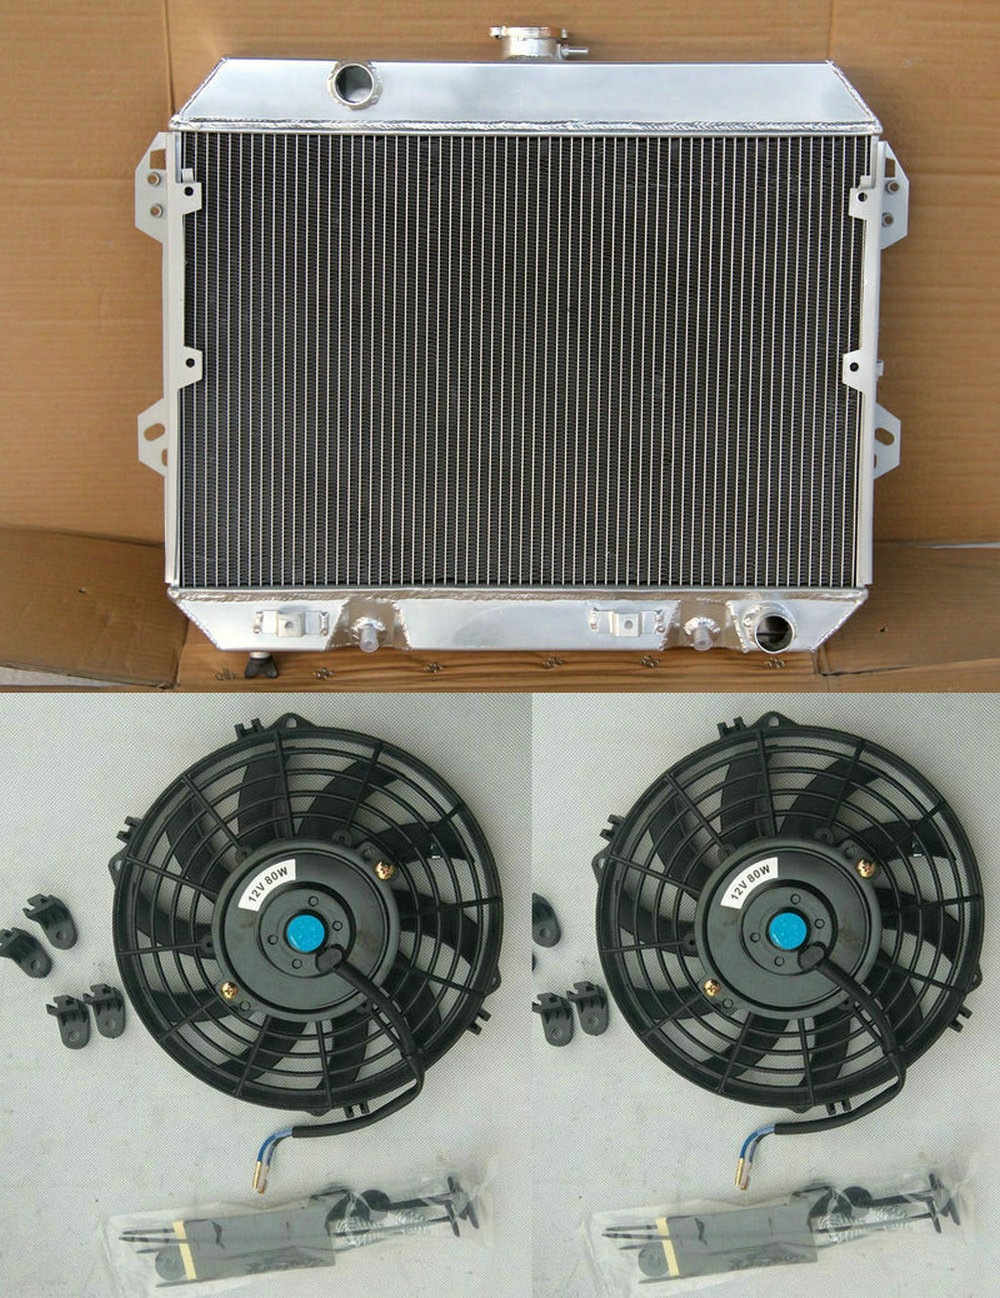 3CORE aluminum radiator for NISSAN DATSUN 510 610 710 720 L20B Manual /&fan